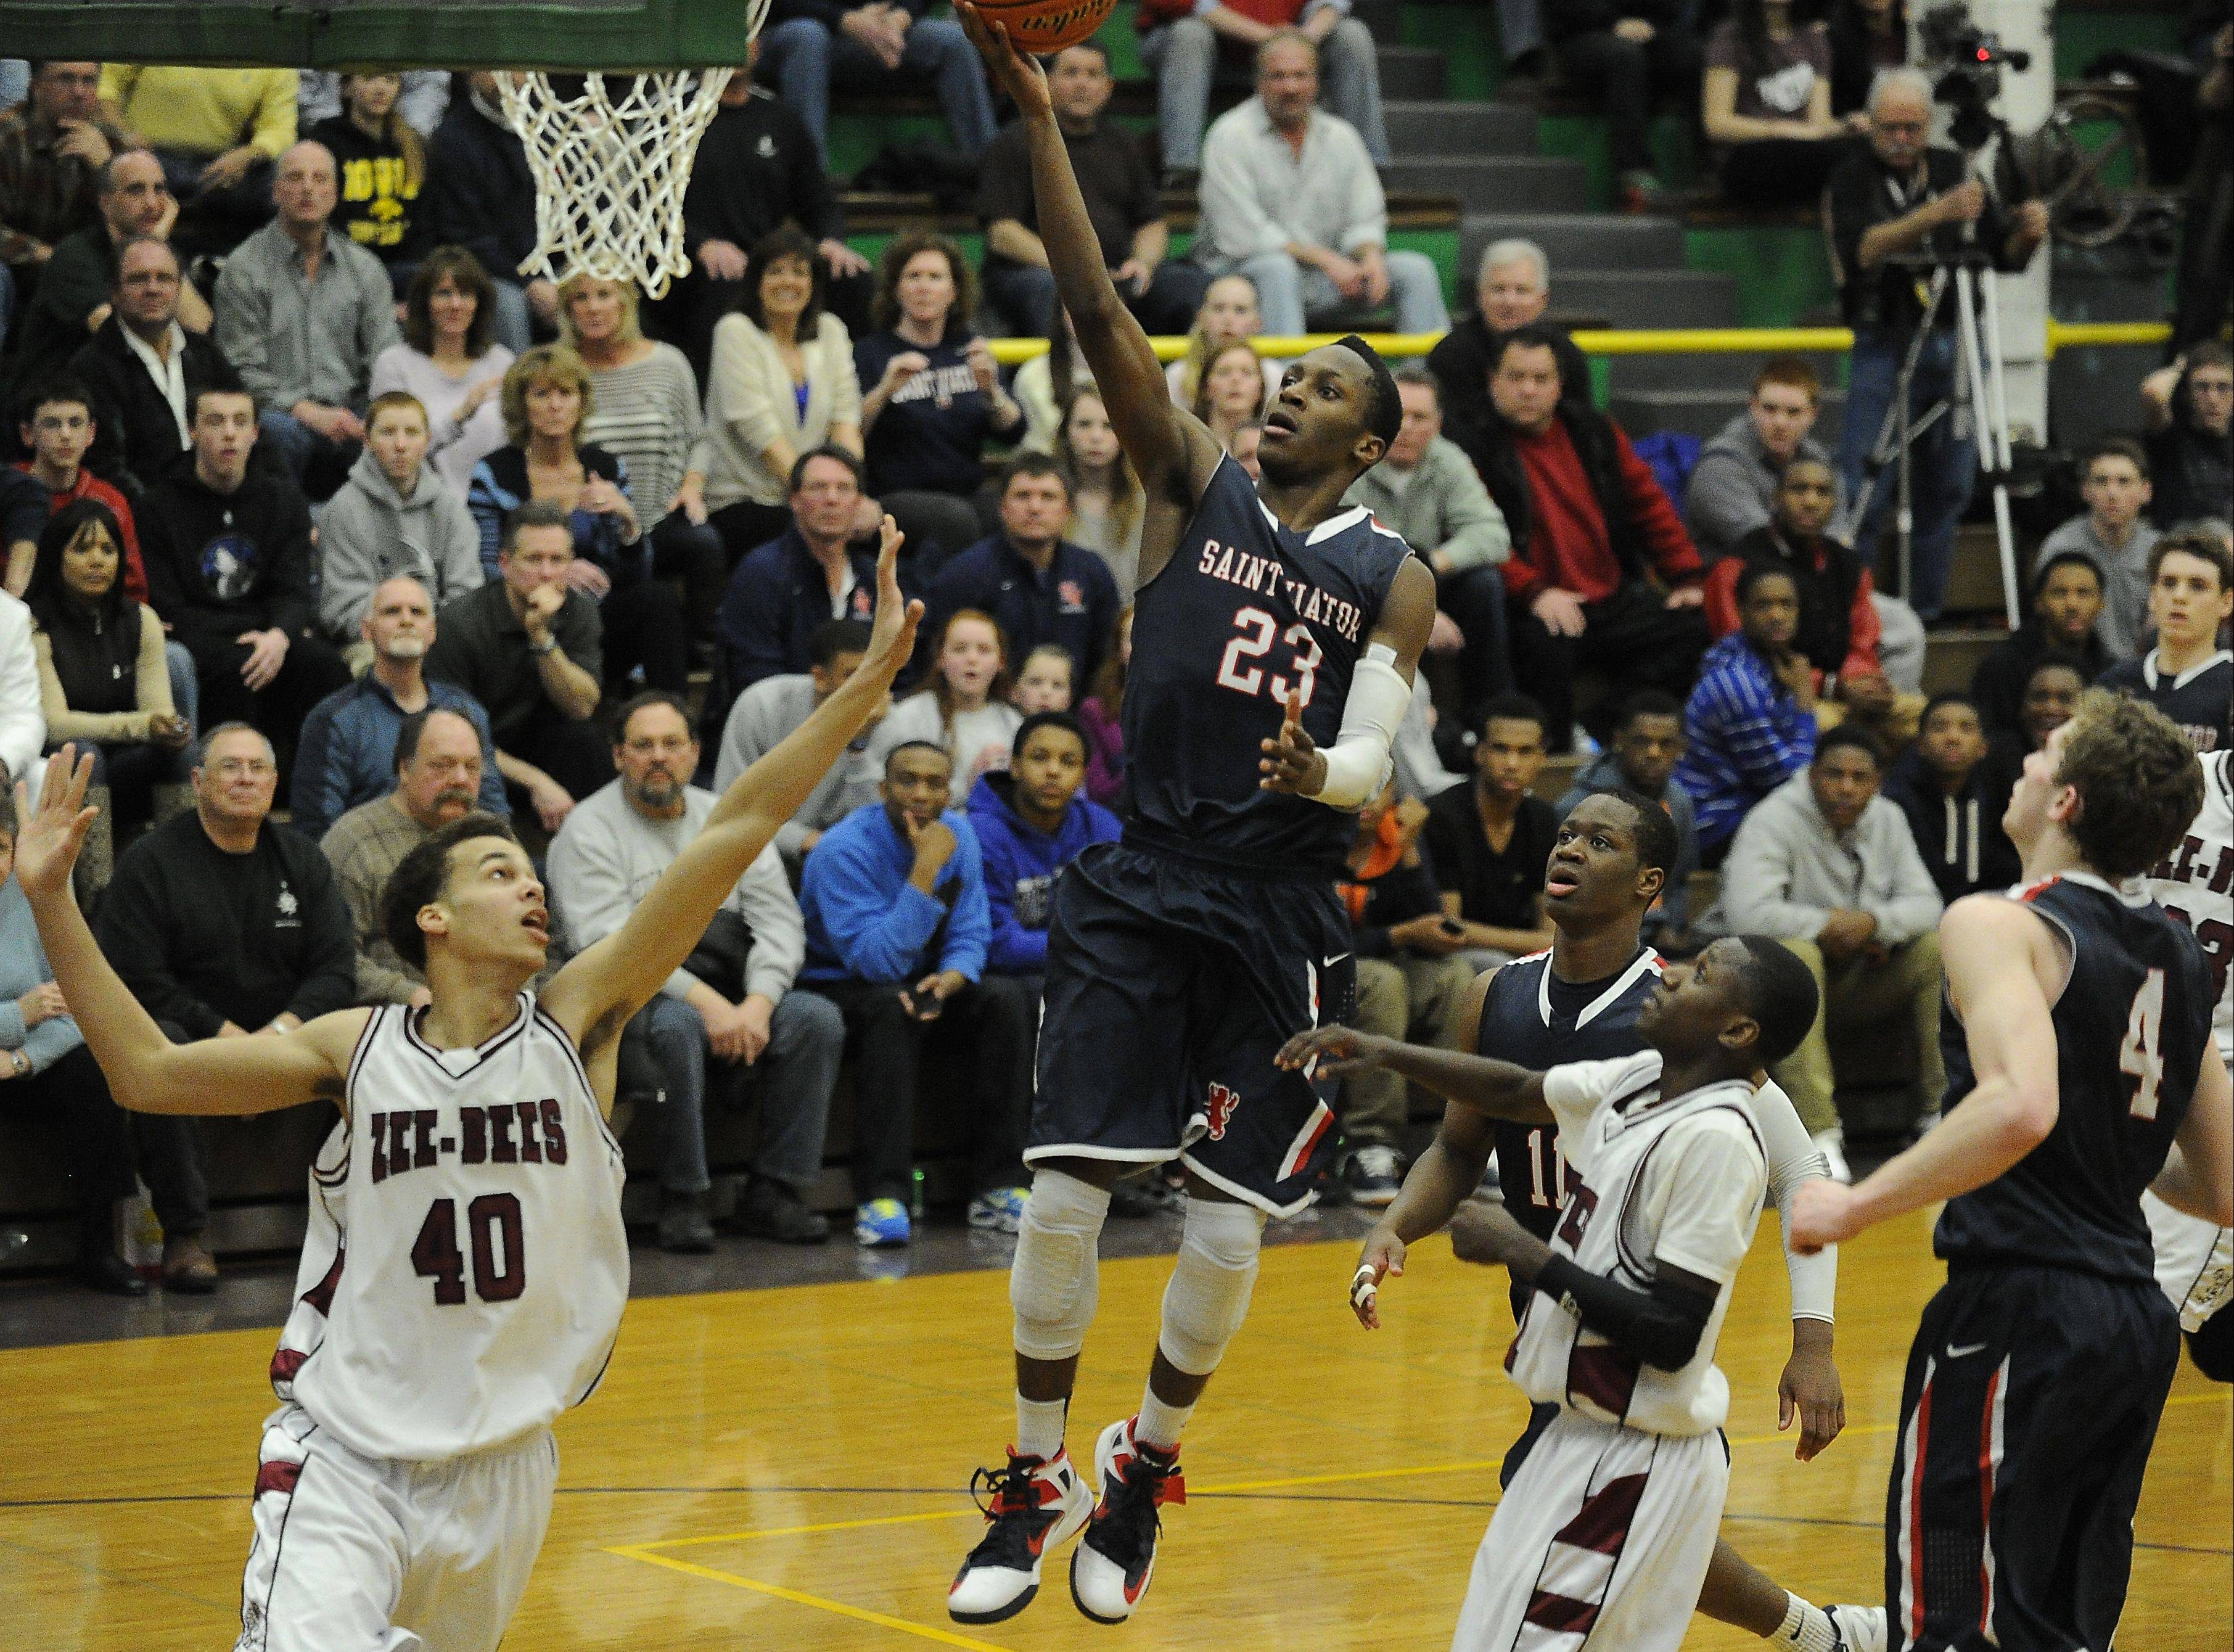 St. Viator's Ore Arogundade delivers a bucket in the fourth quarter to help the Lions past Zion-Benton in the Waukegan sectional Thursday.